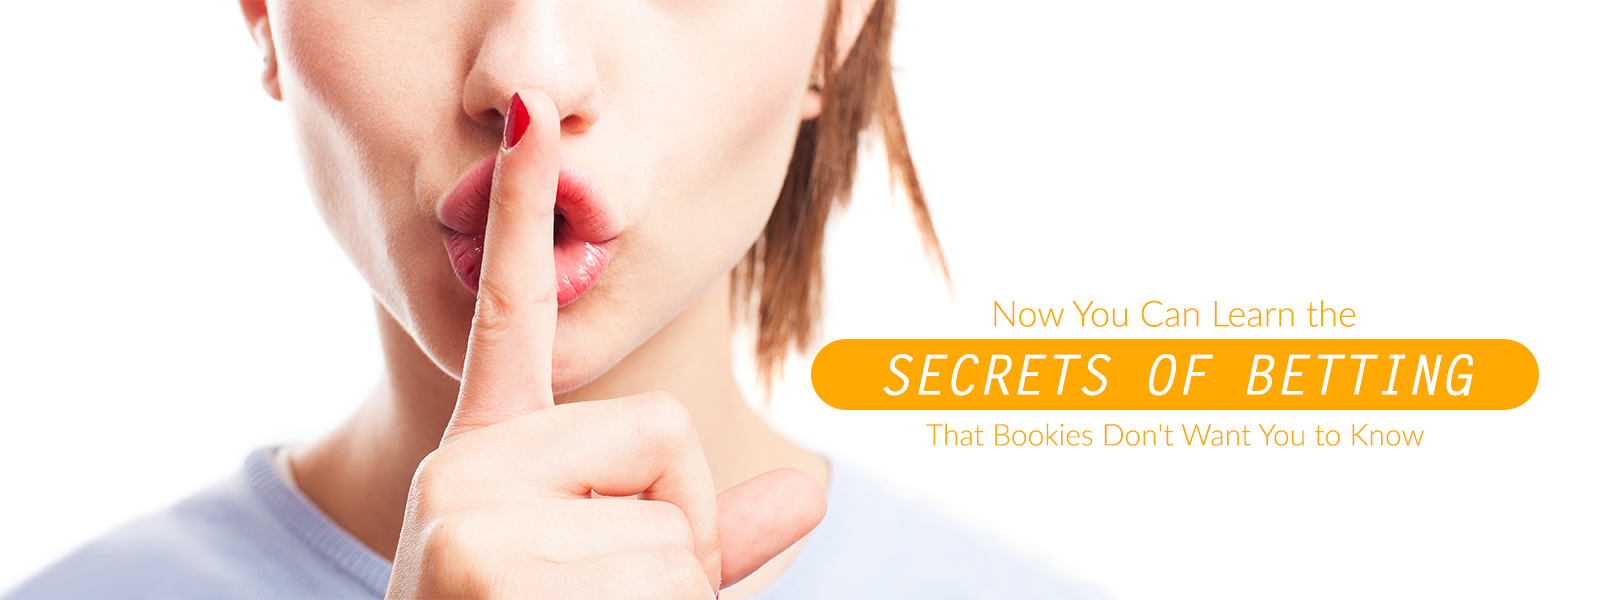 "Secrets of Betting That Bookies Don""t Want You to Know"